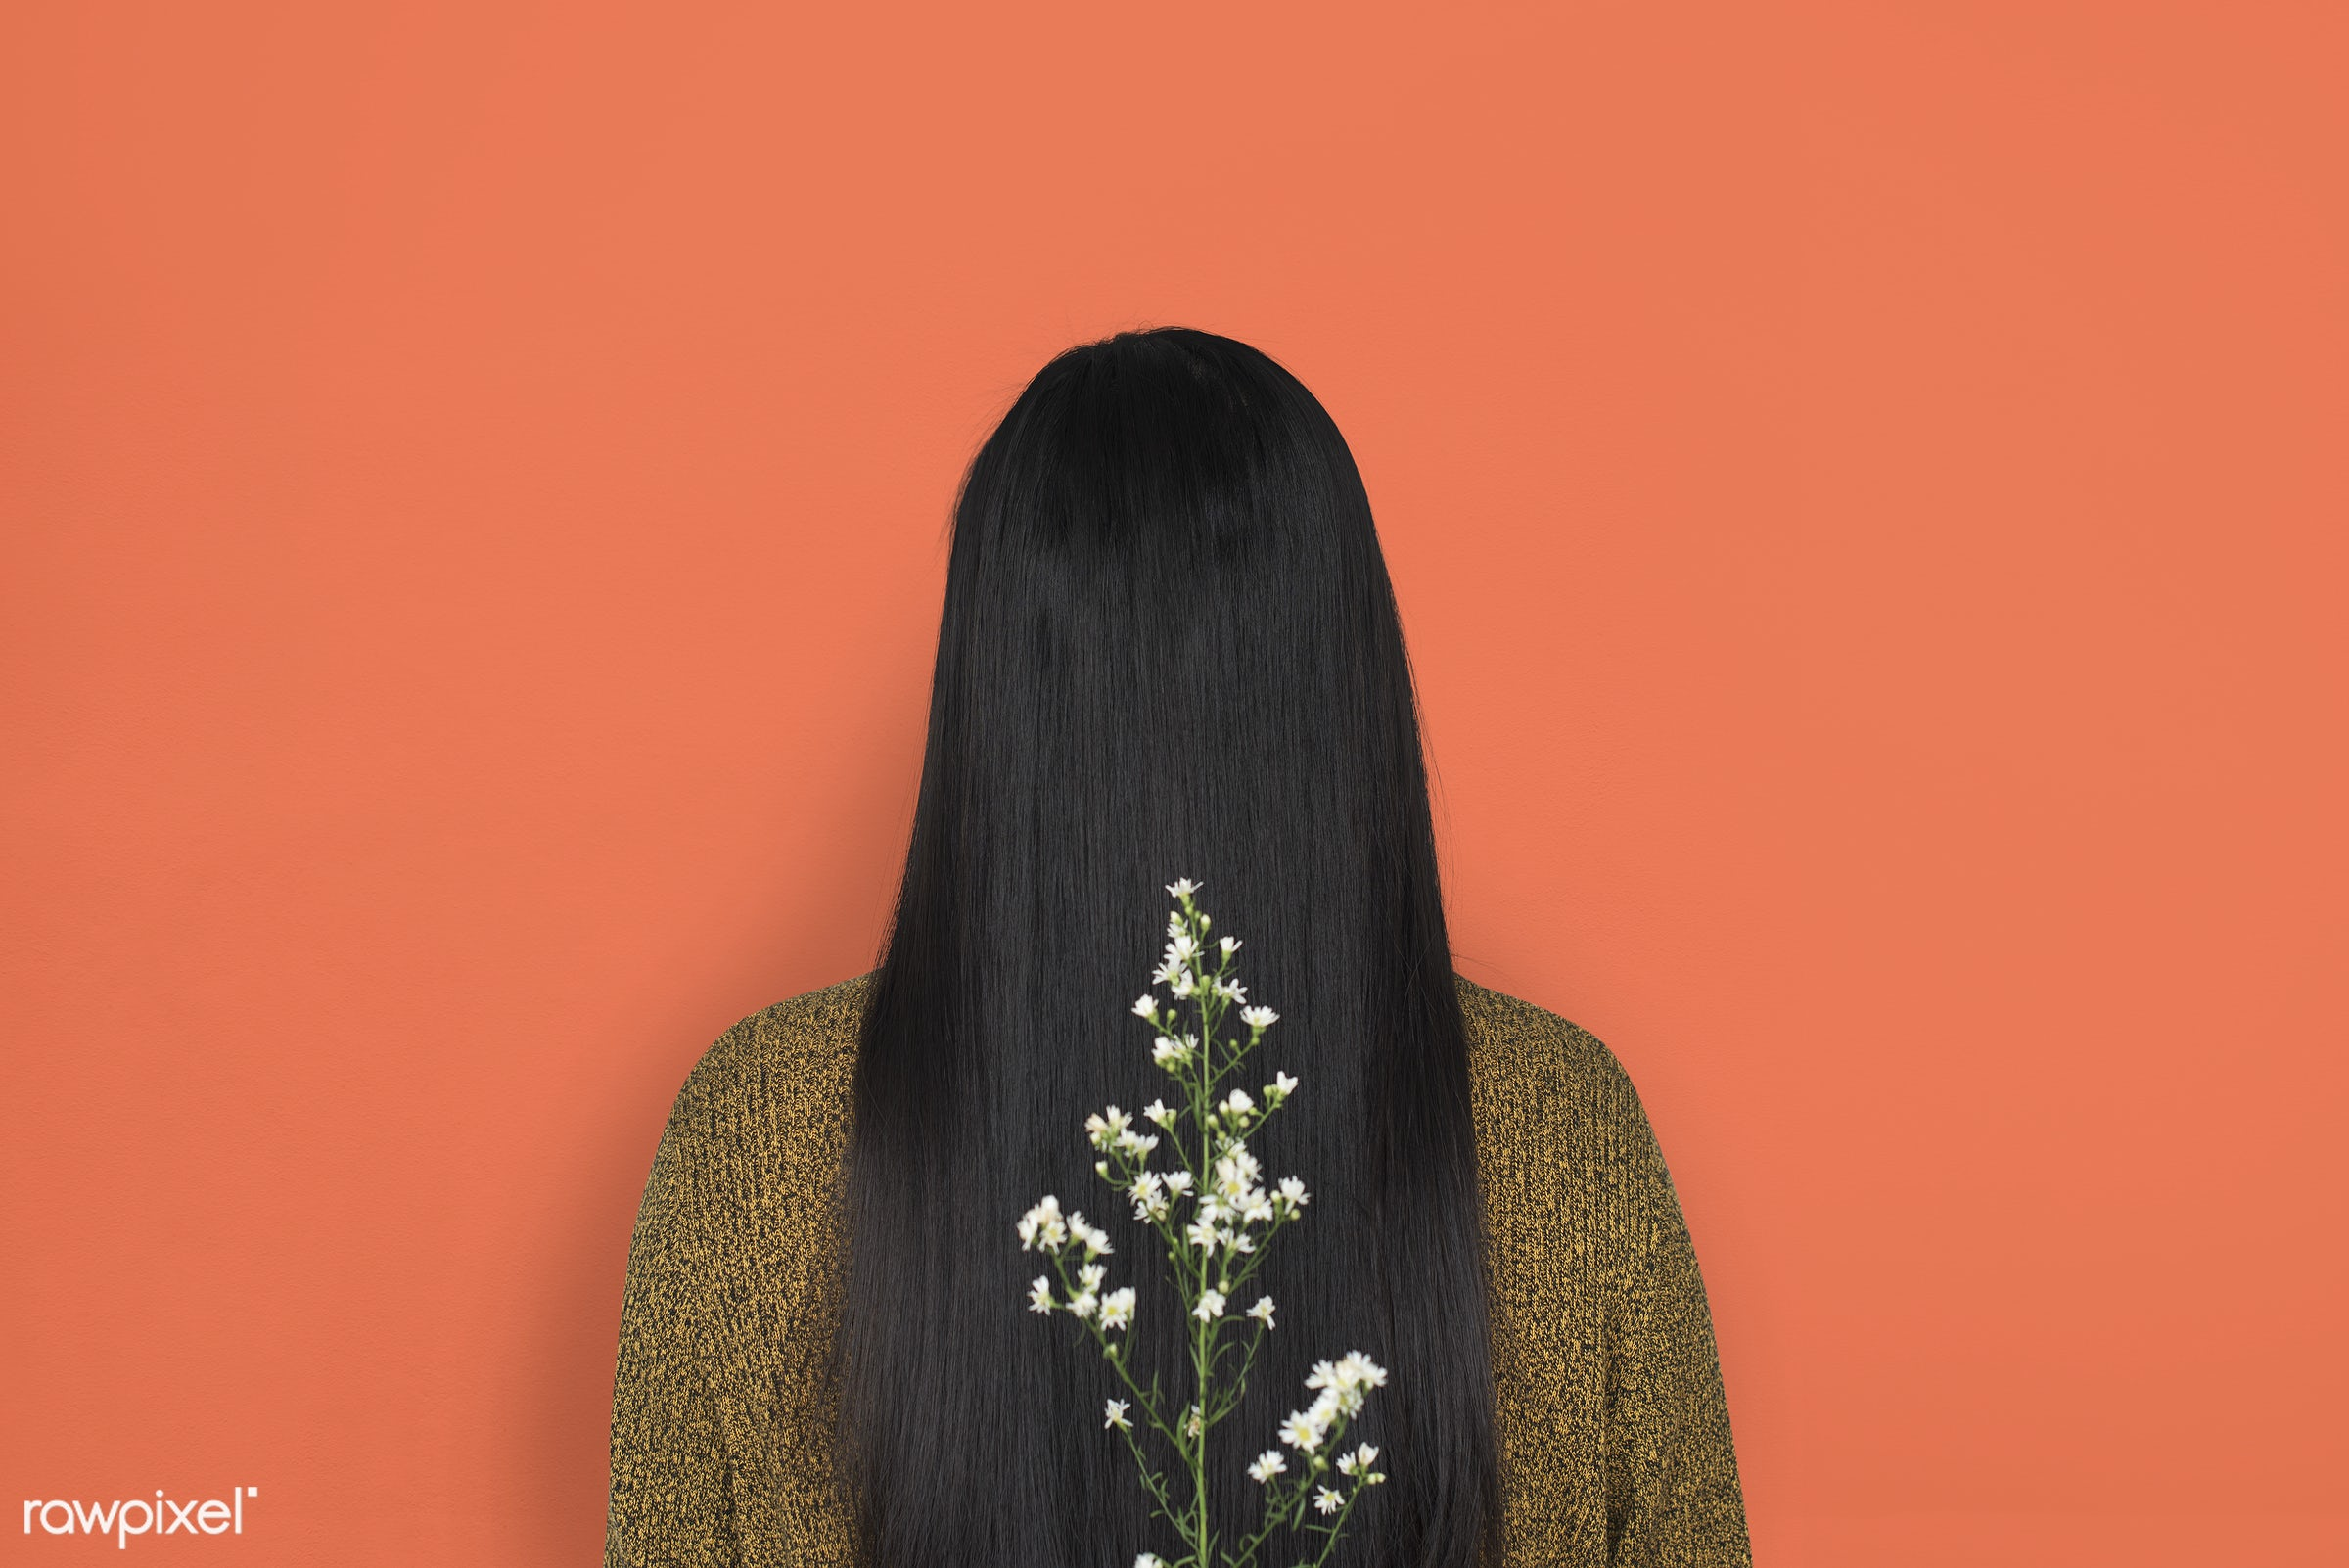 studio, person, people, girl, woman, casual, flower, rear view, orange, isolated, flora, long hair, adult, portrait,...